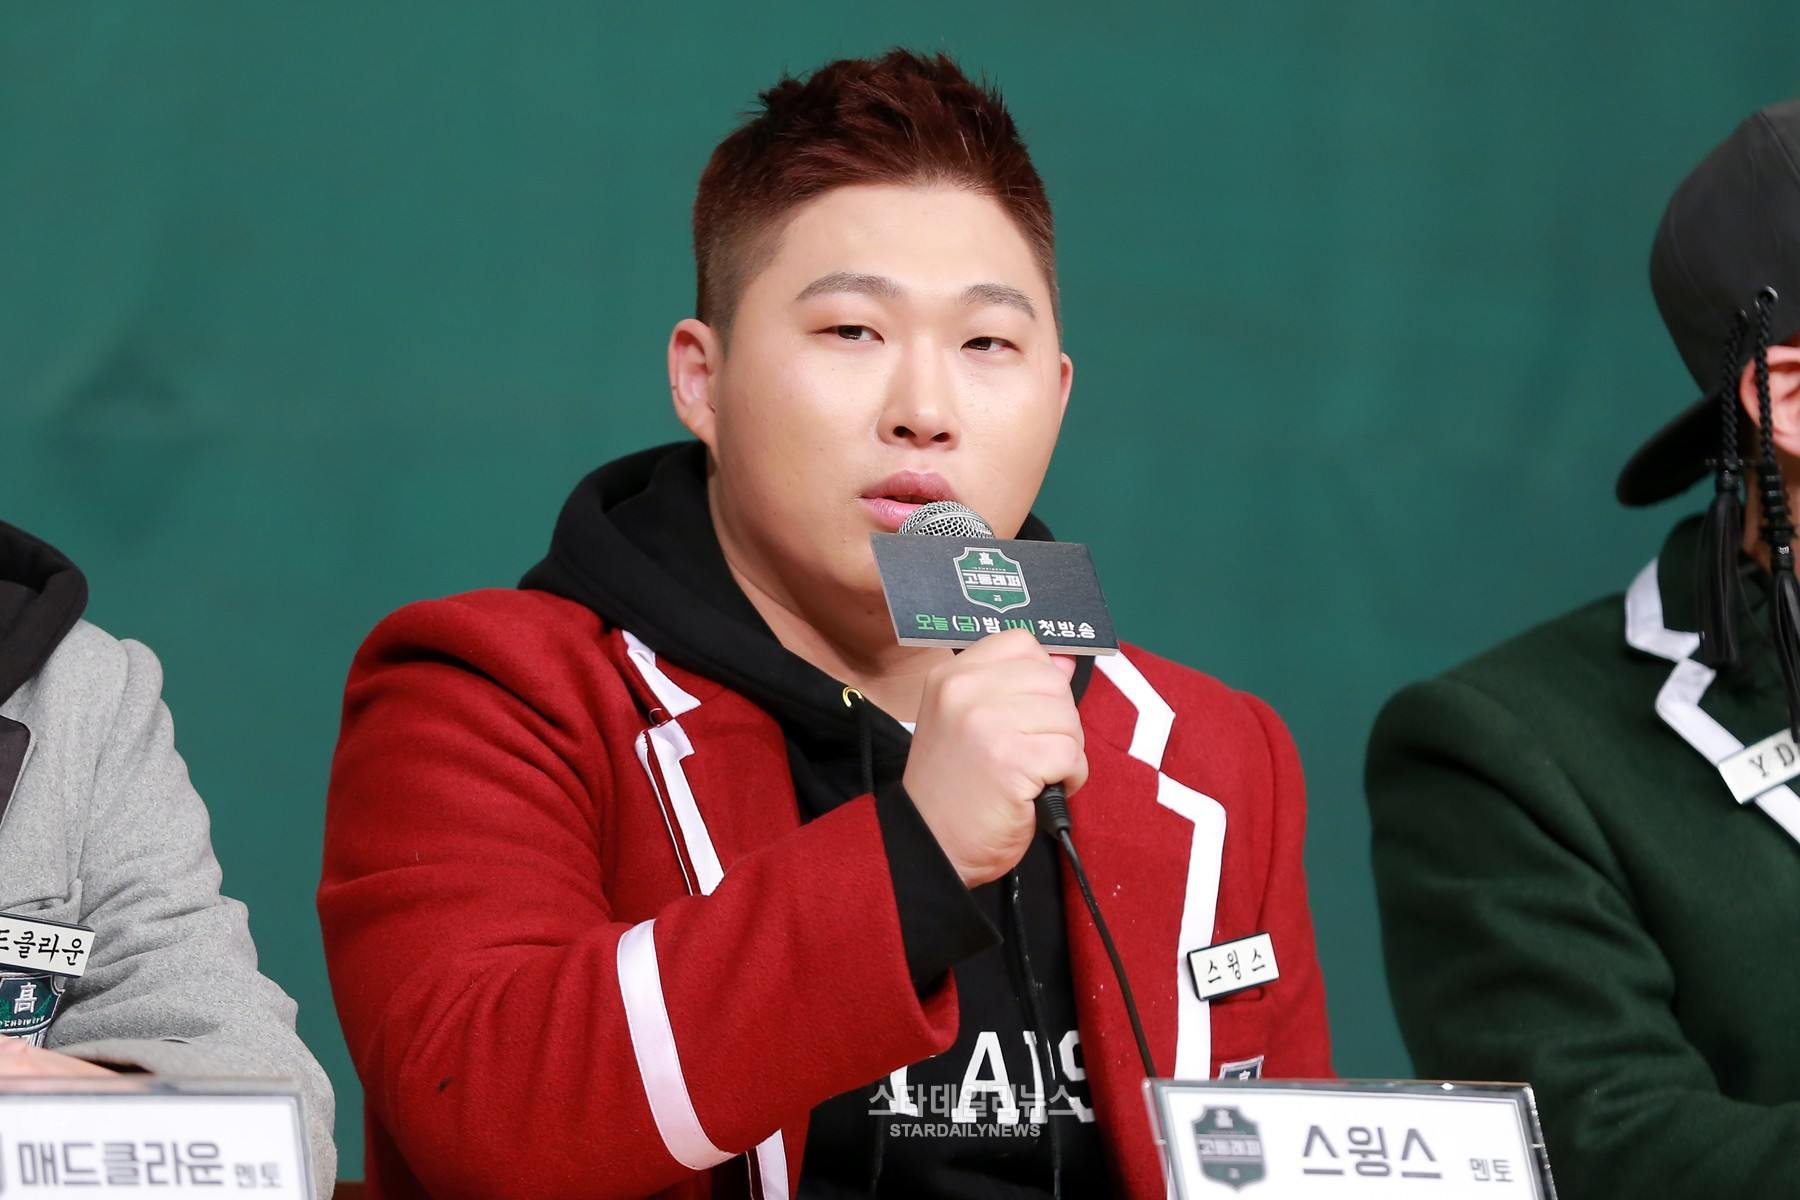 Swings Says Hes Kissed Over 500 Girls At Clubs